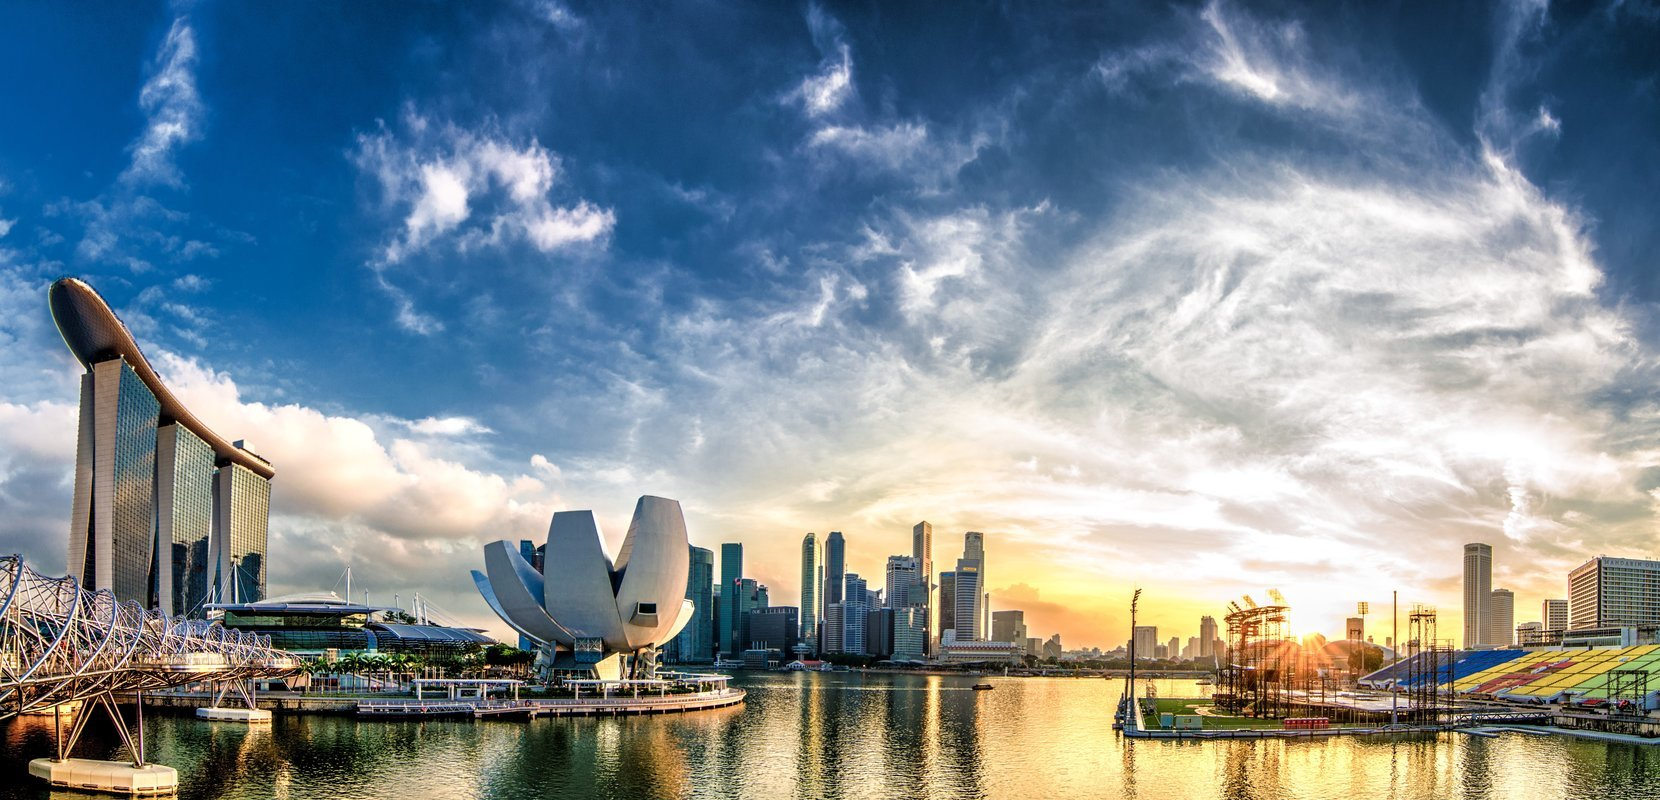 Singapore: Island Reclaimed - Collection